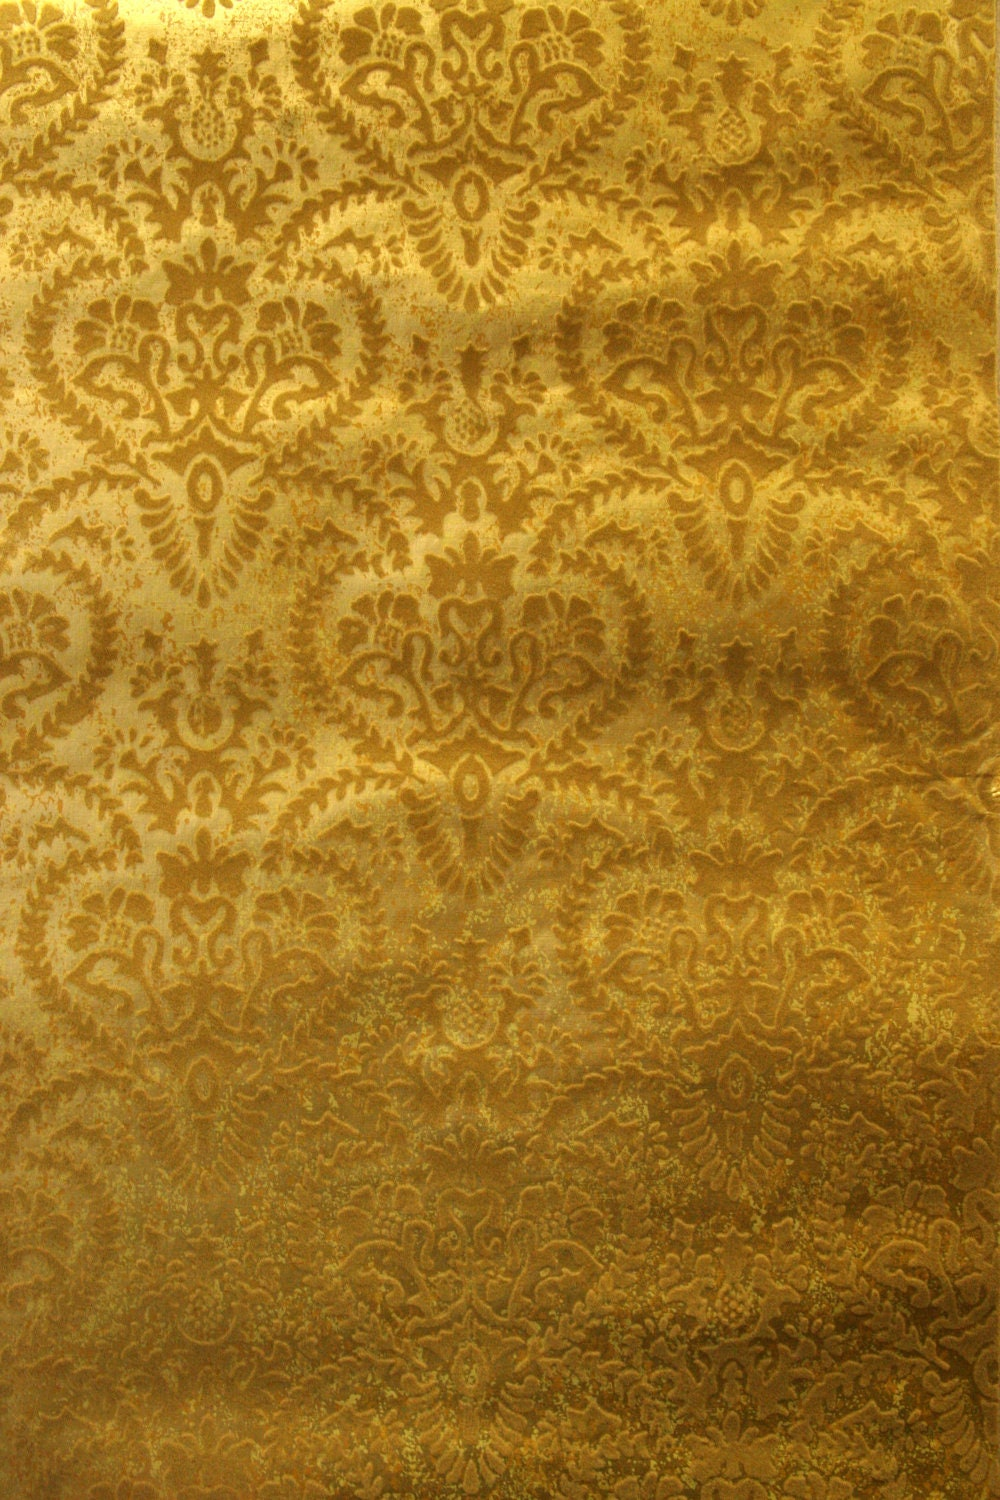 Vintage Wallpaper 1960's Gold Metallic Flocked Hollywood. Acadia White. Rustic Wood Shelves. Tongue And Groove Walls. Interior Decorators Near Me. Grandscapes. Quality Homes. Side By Side Oven. Wrought Iron Arbor